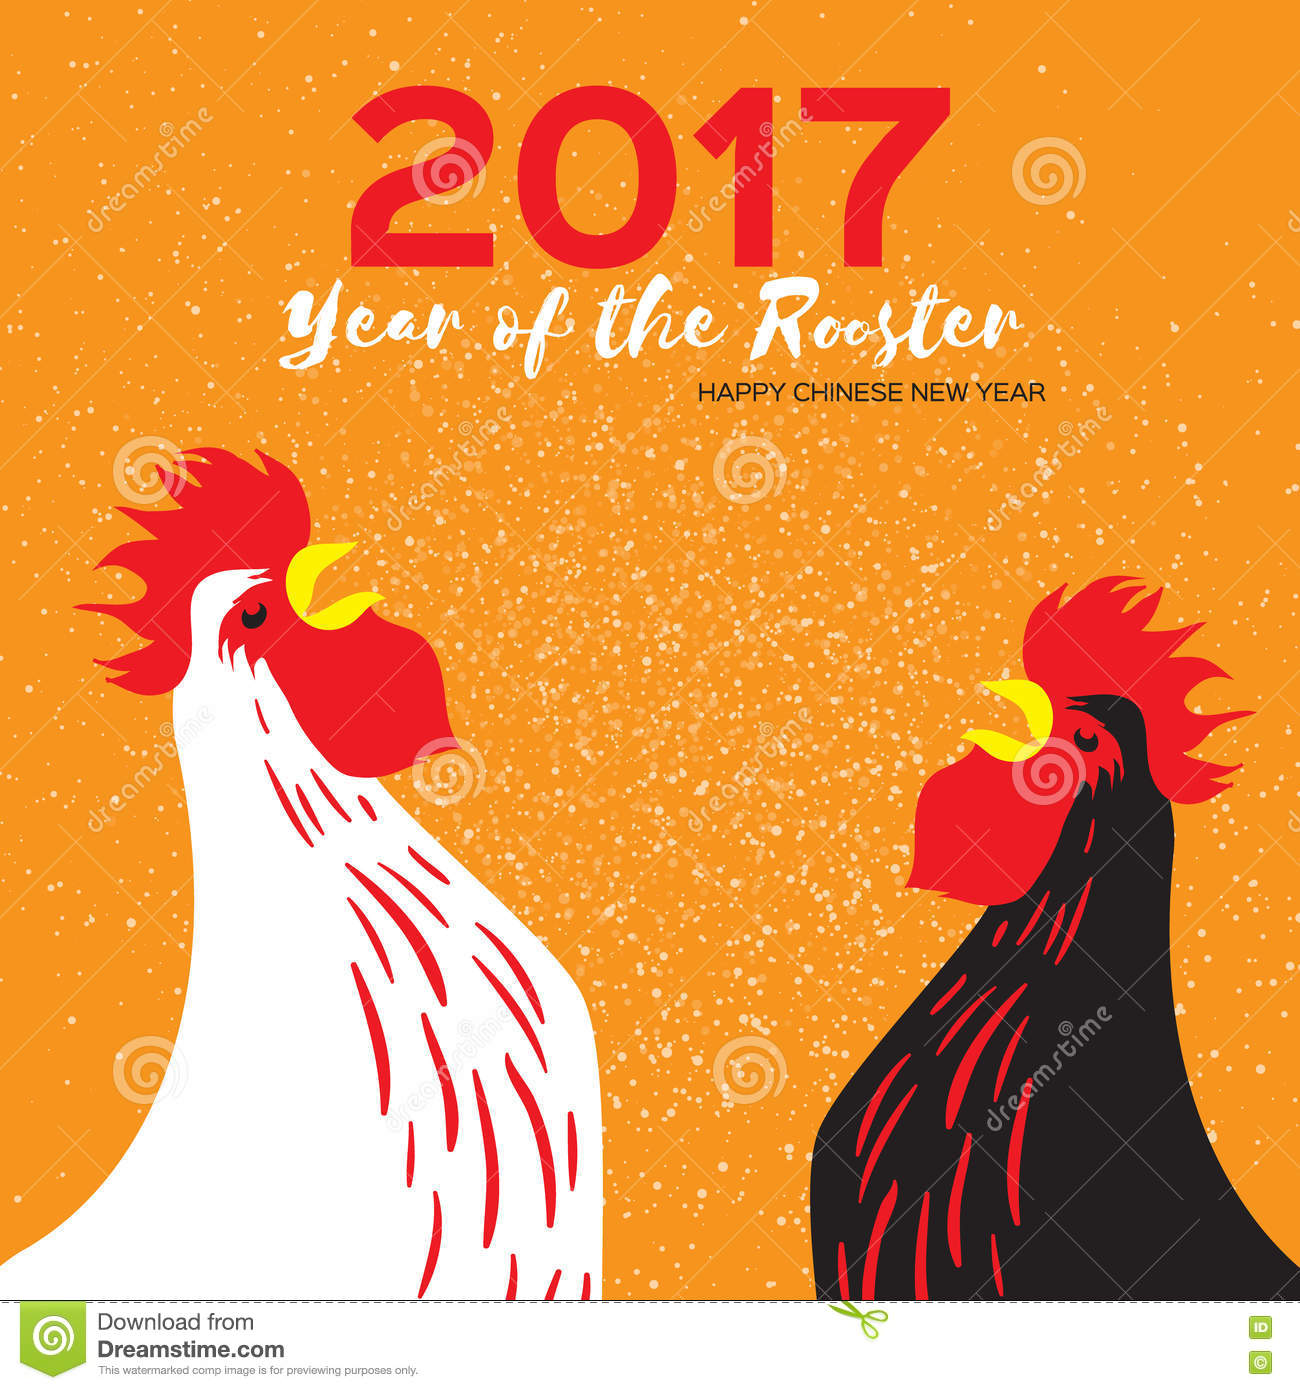 Japanese New Year Calendar : Japanese cartoons illustrations vector stock images